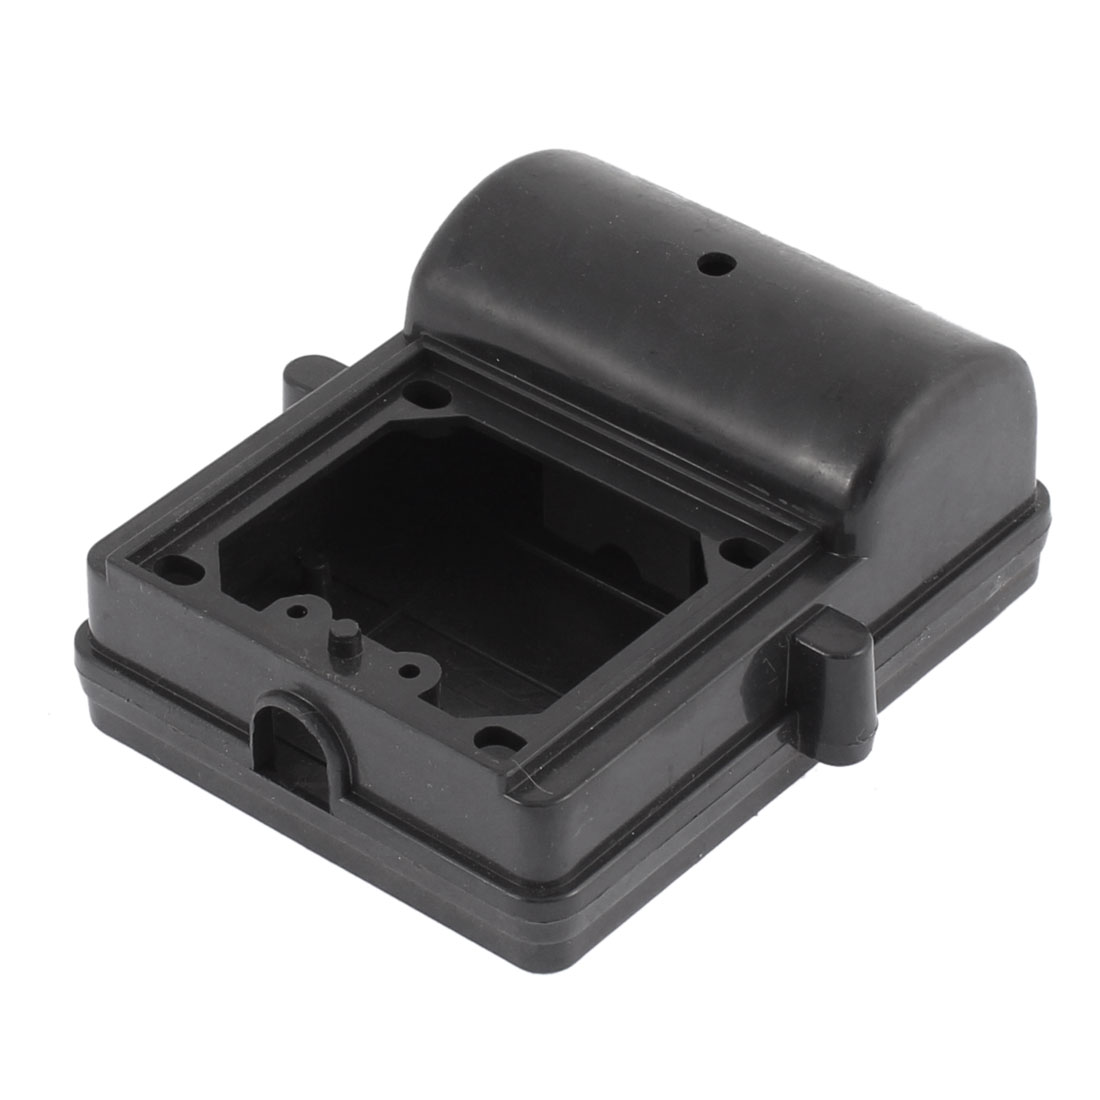 Black Plastic Dual Capacitor Protector Junction Box 95mm x 75mm